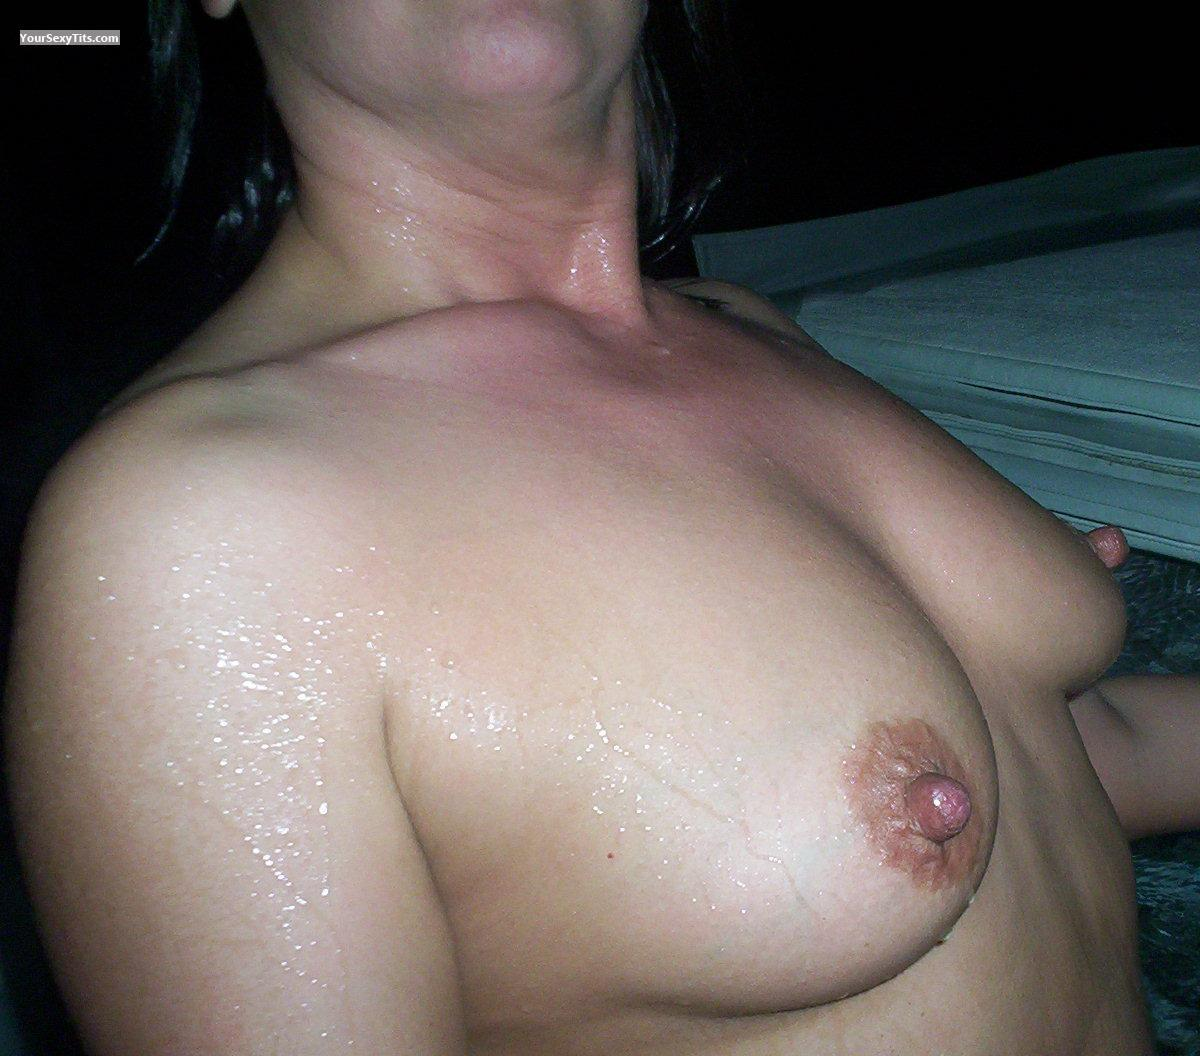 Medium Tits Of A Friend Wifey